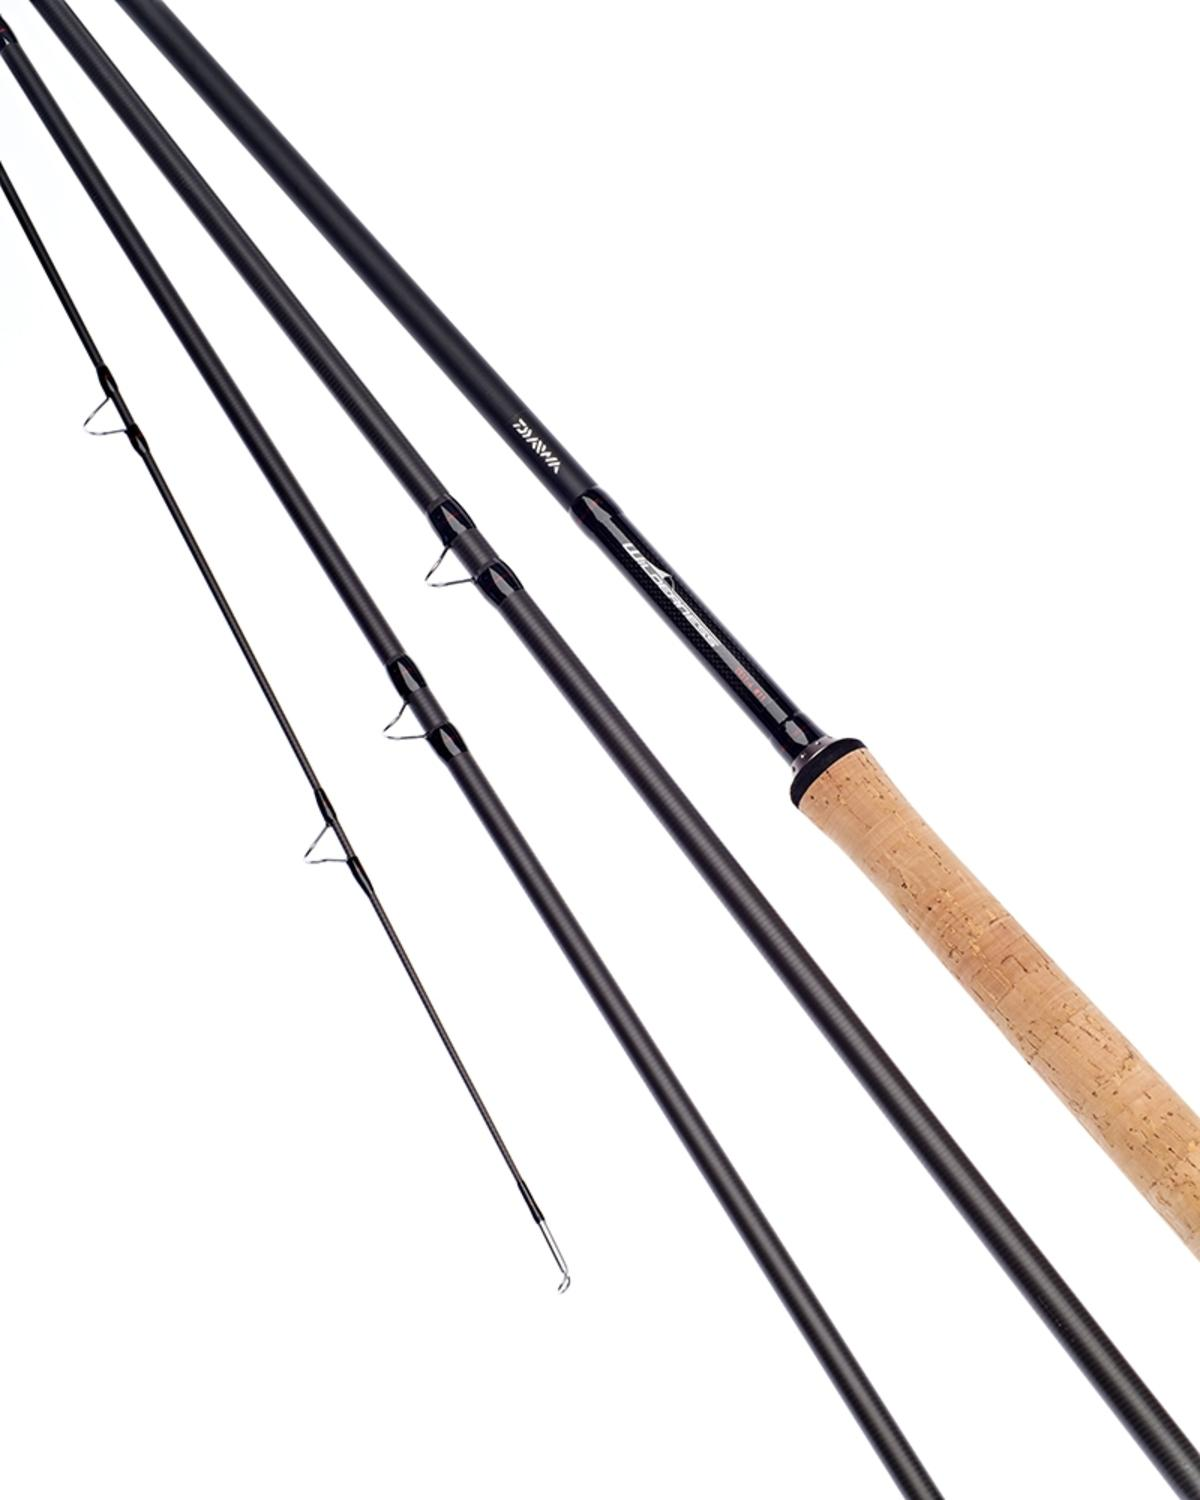 Ex Display Daiwa Wilderness Salmon Fly Rod 15ft #11 4 Section - WNSF1511-4-BU